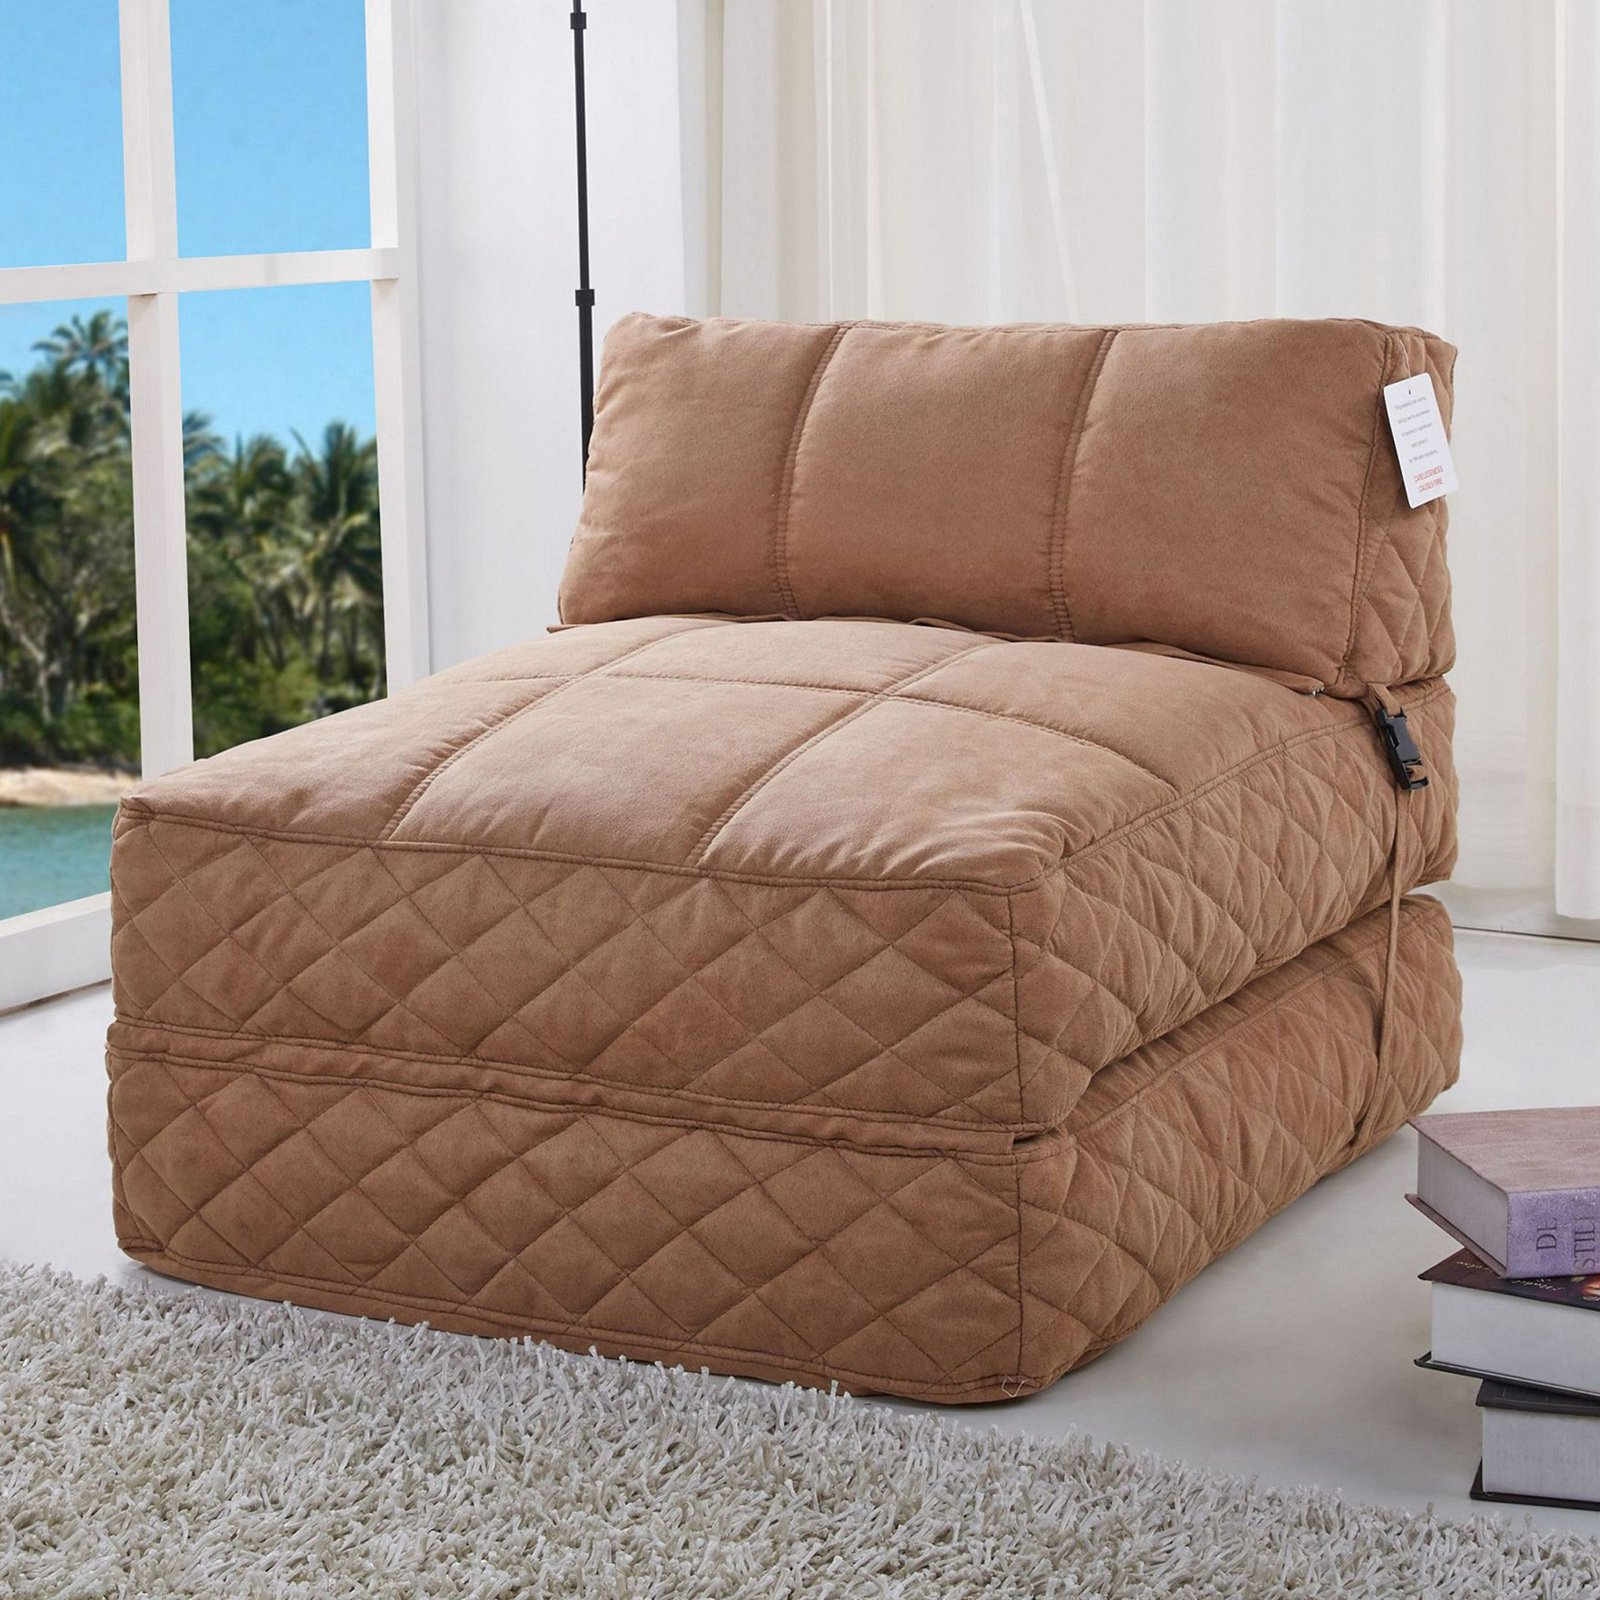 Gold Sparrow Austin Fabric Bean Bag Chair Bed Walmart Com